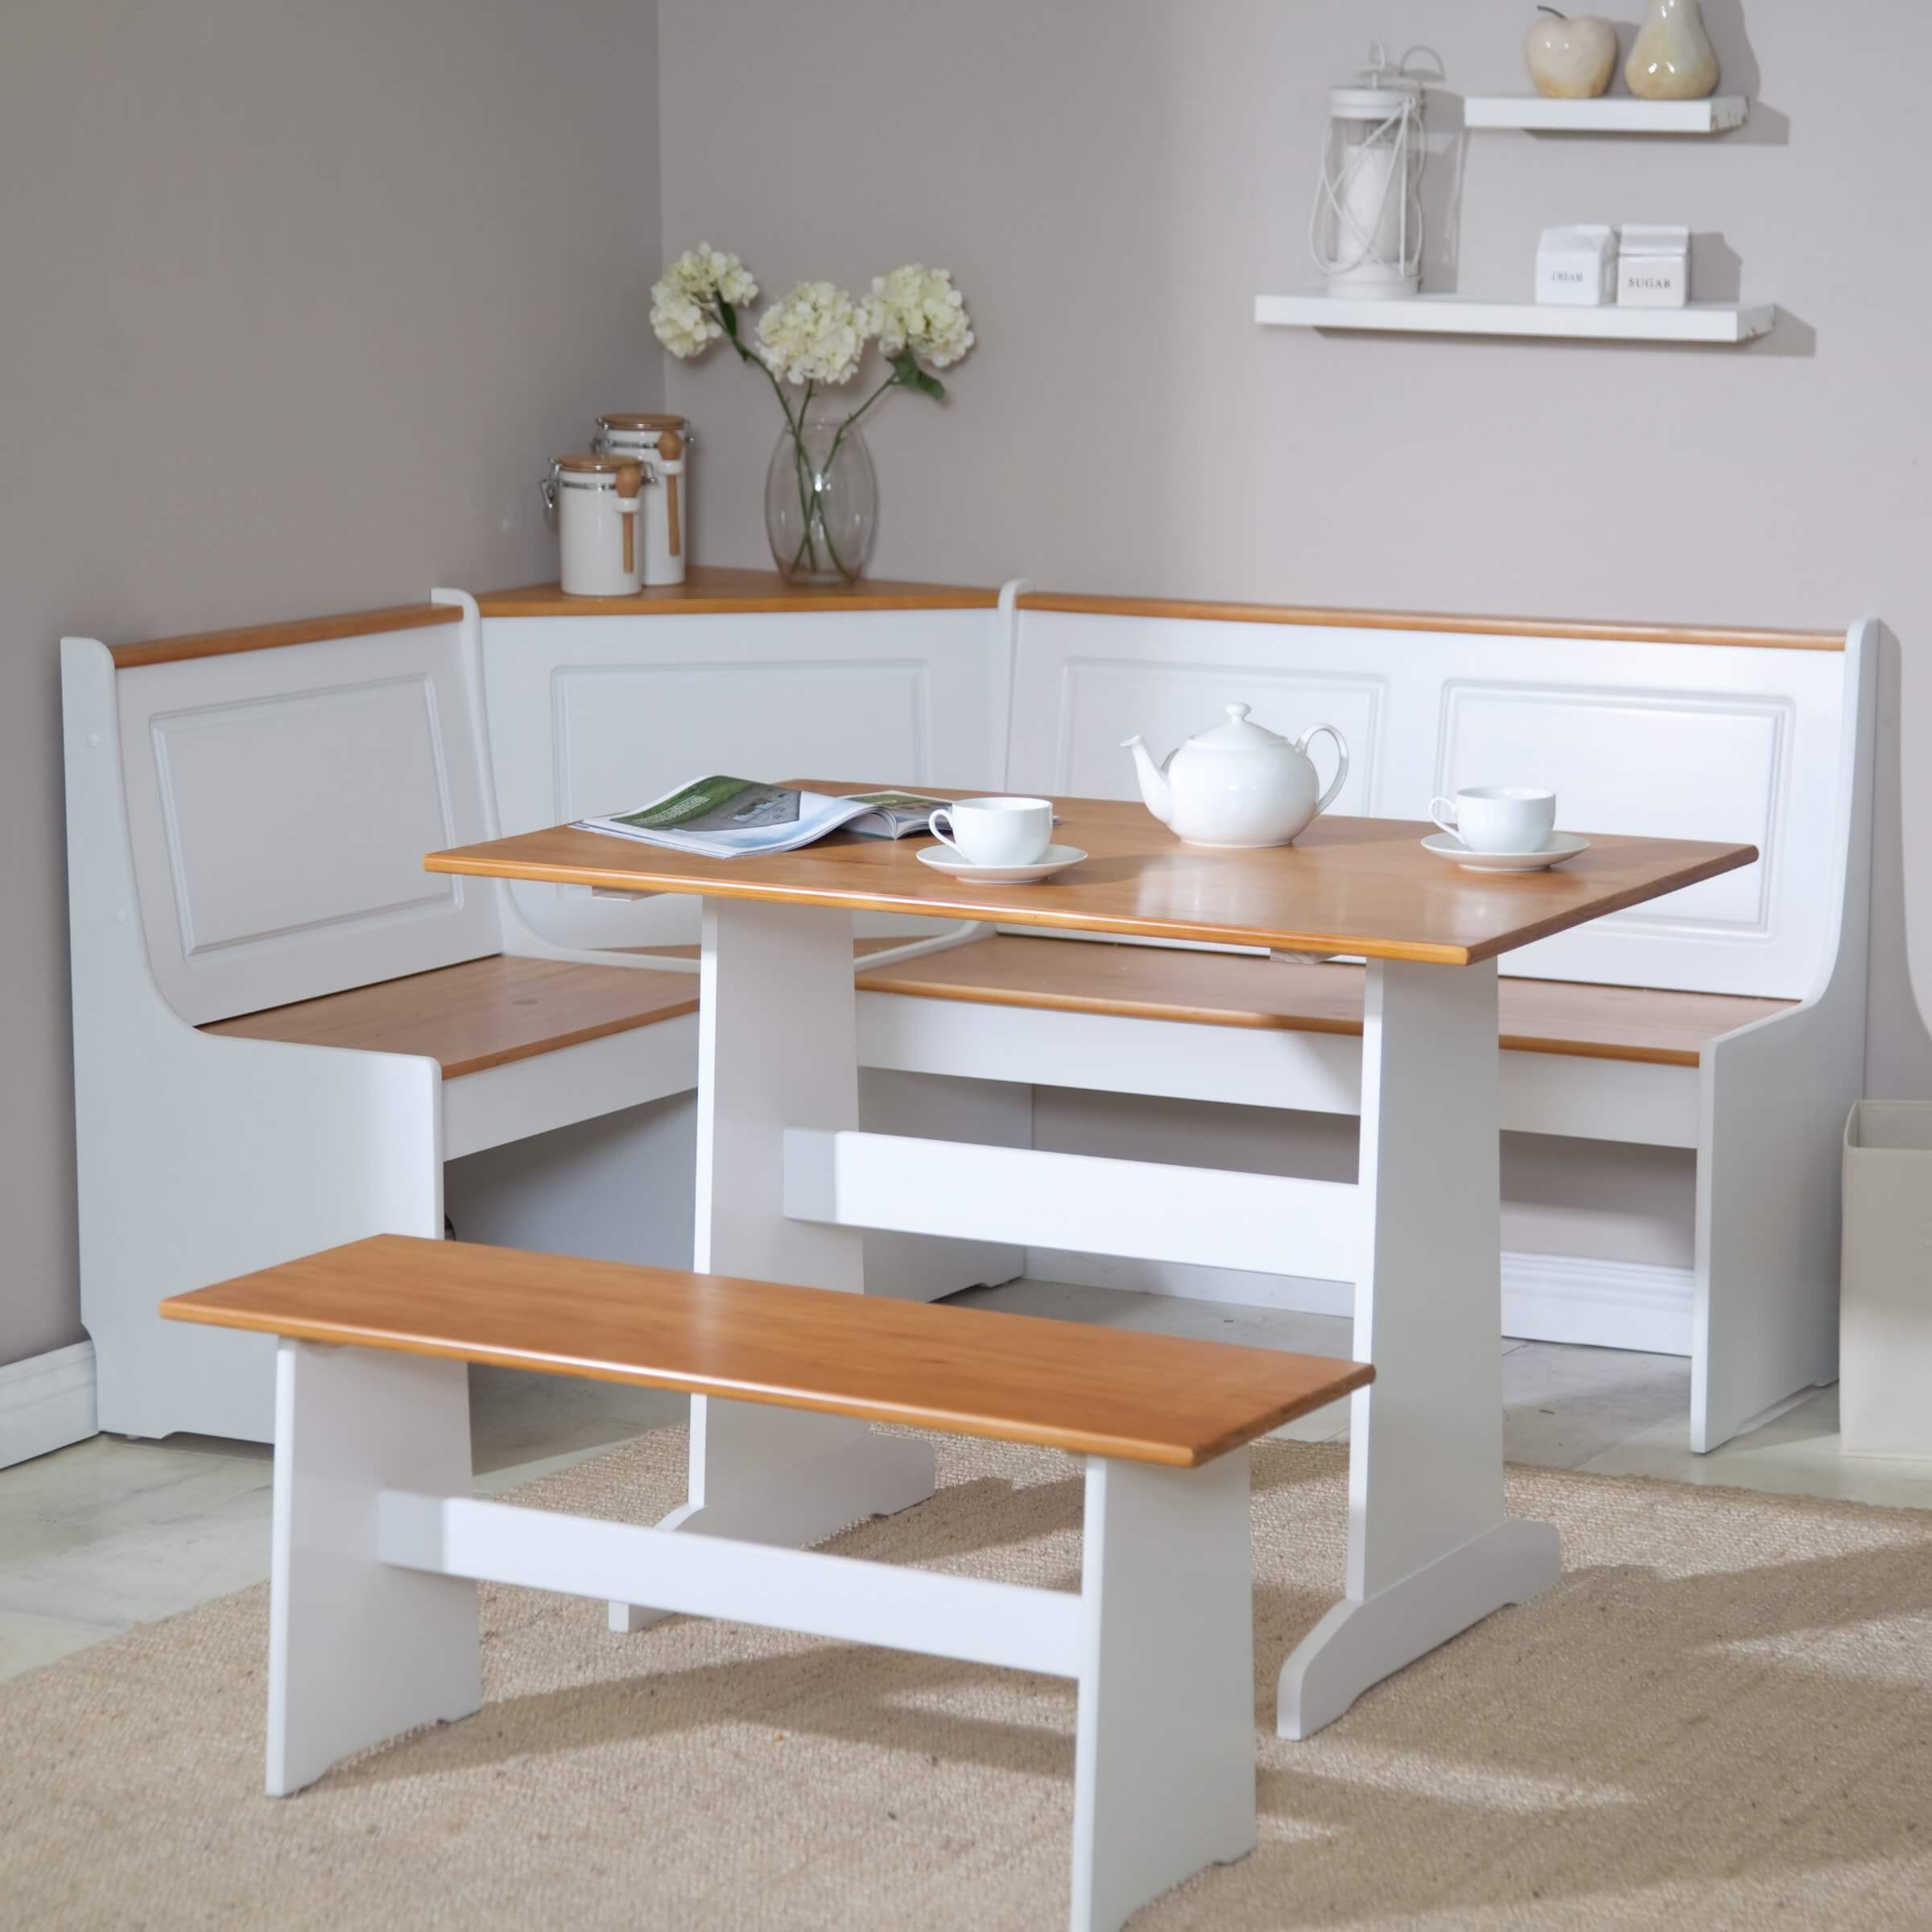 Space saving kitchen tables - This Three Piece Breakfast Nook Can Help Brighten Up Your Space Or Fit In Nicely With